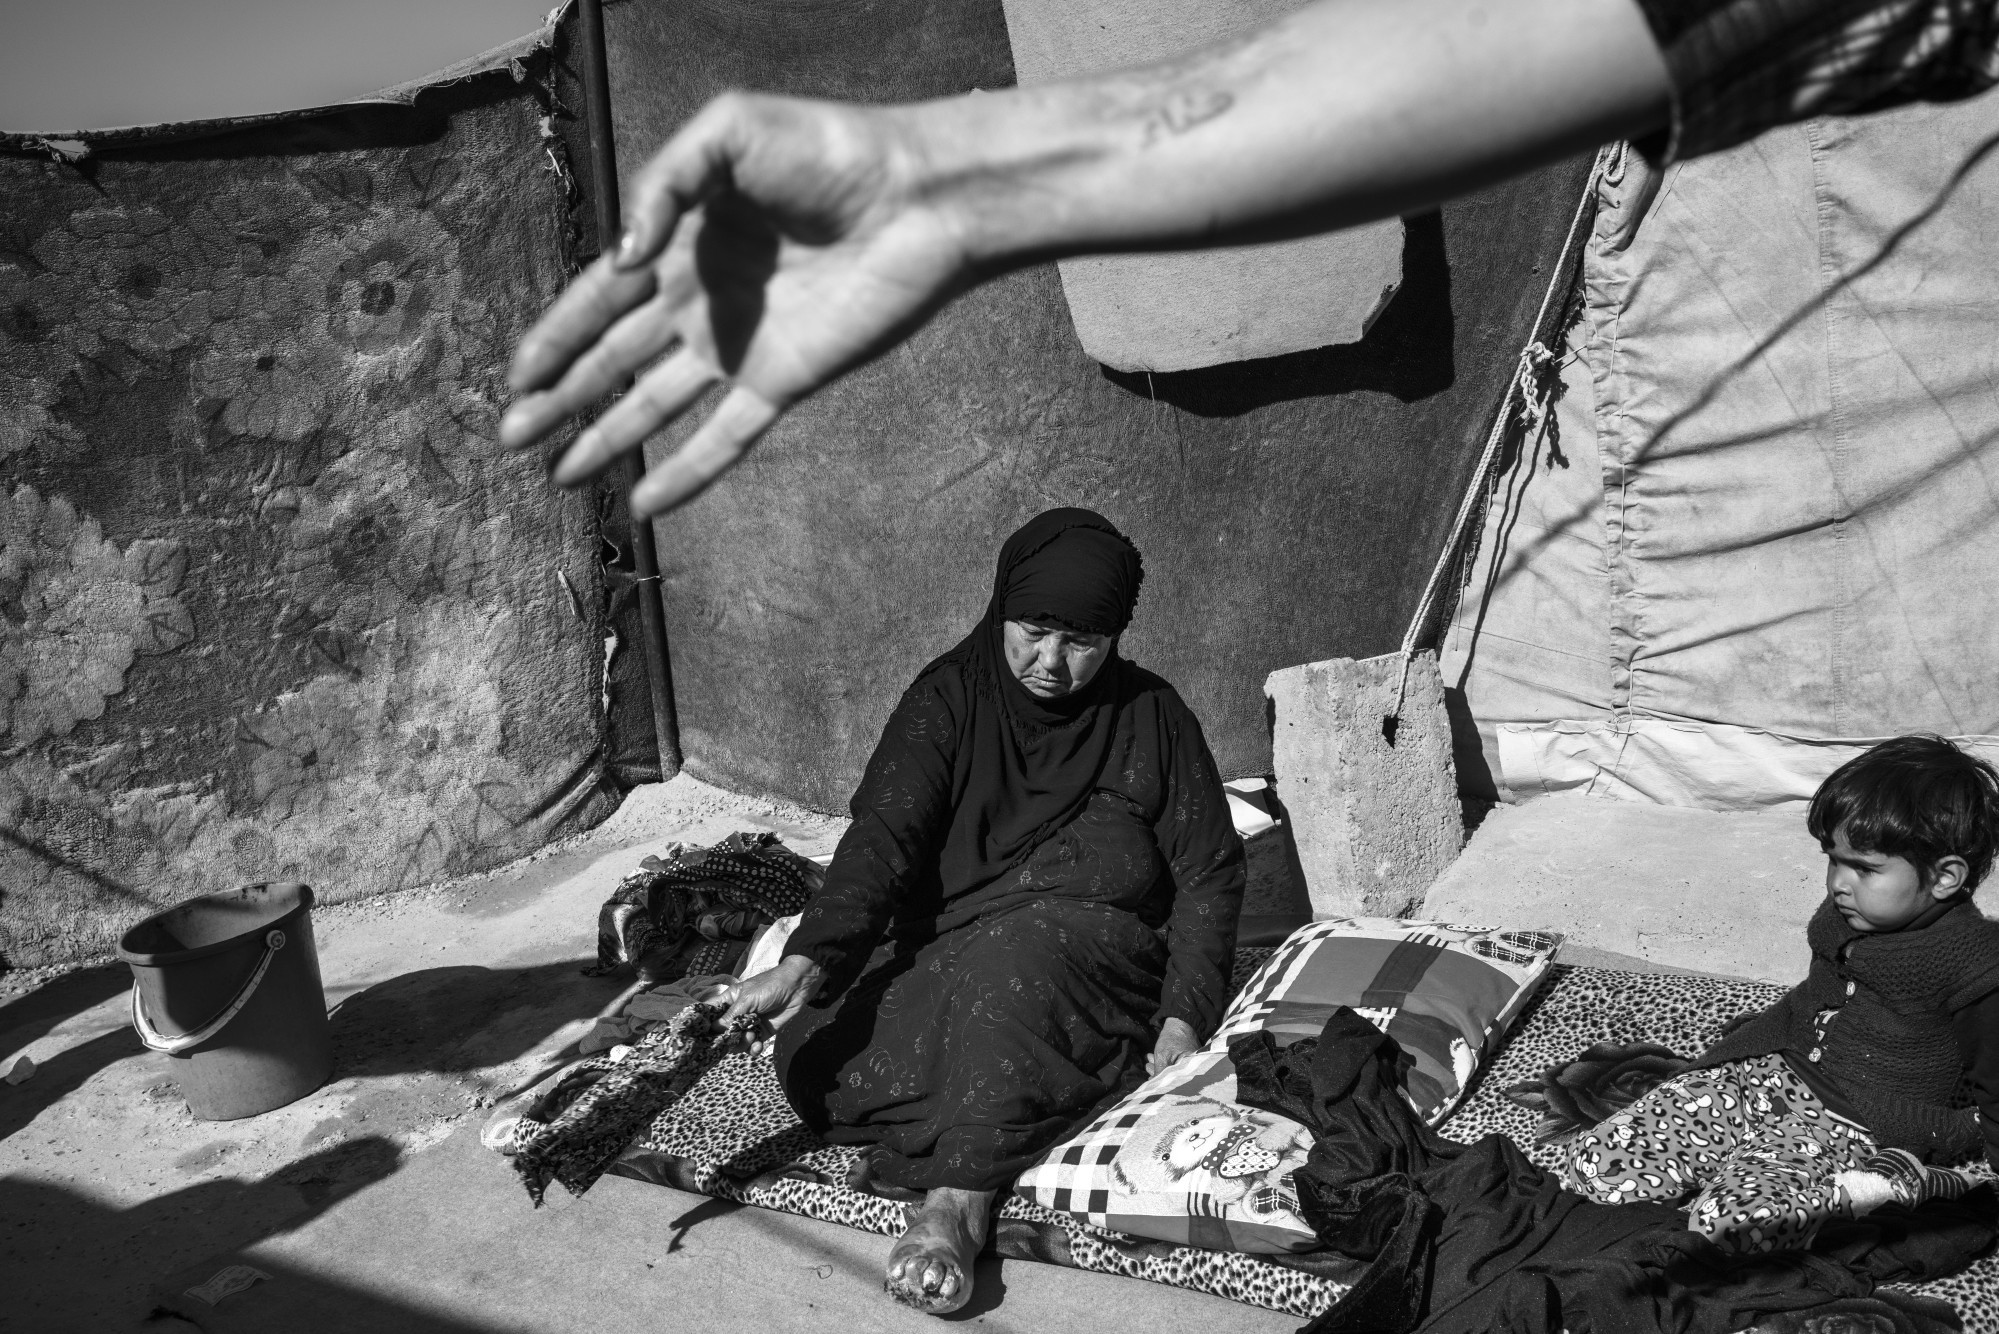 Abda Dayeh Hamadi, 60, sits outside her tent at camp Markazi, in Anbar Province, where many internally displaced families have come from Fallujah and Ramadi. A diabetic, Abda suffers from gangrene in her left foot and has no access to health care anymore. Moises Saman/Magnum Photos for ICRC